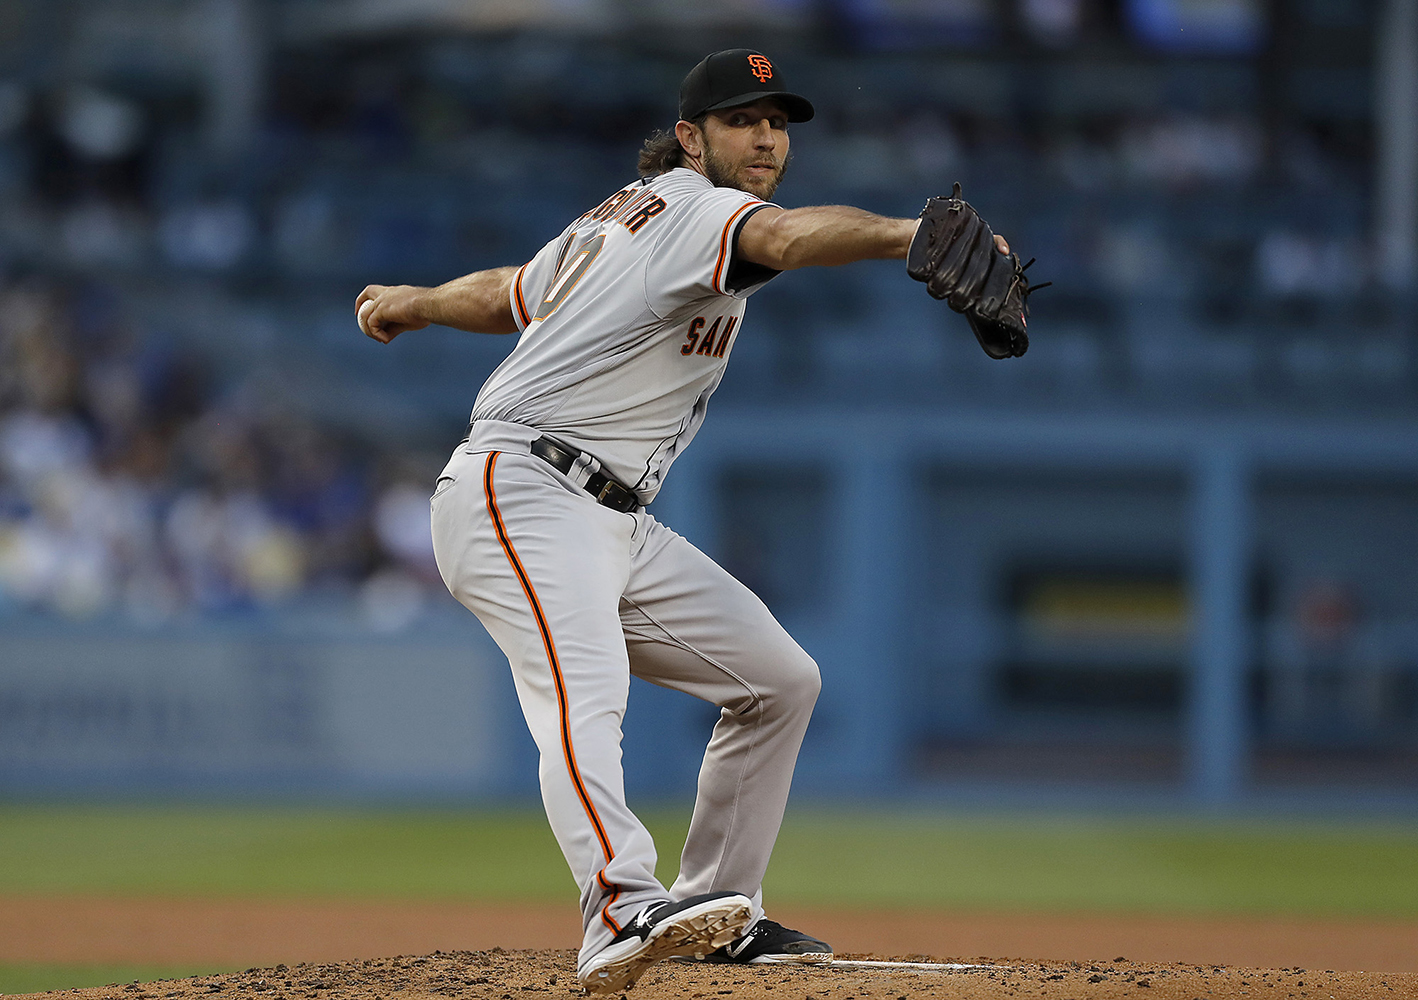 The San Francisco Giants' Madison Bumgarner delivers a pitch against the Los Angeles Dodgers in the second inning on Thursday, June 20, 2019, at Dodger Stadium in Los Angeles. (Luis Sinco/Los Angeles Times/TNS)